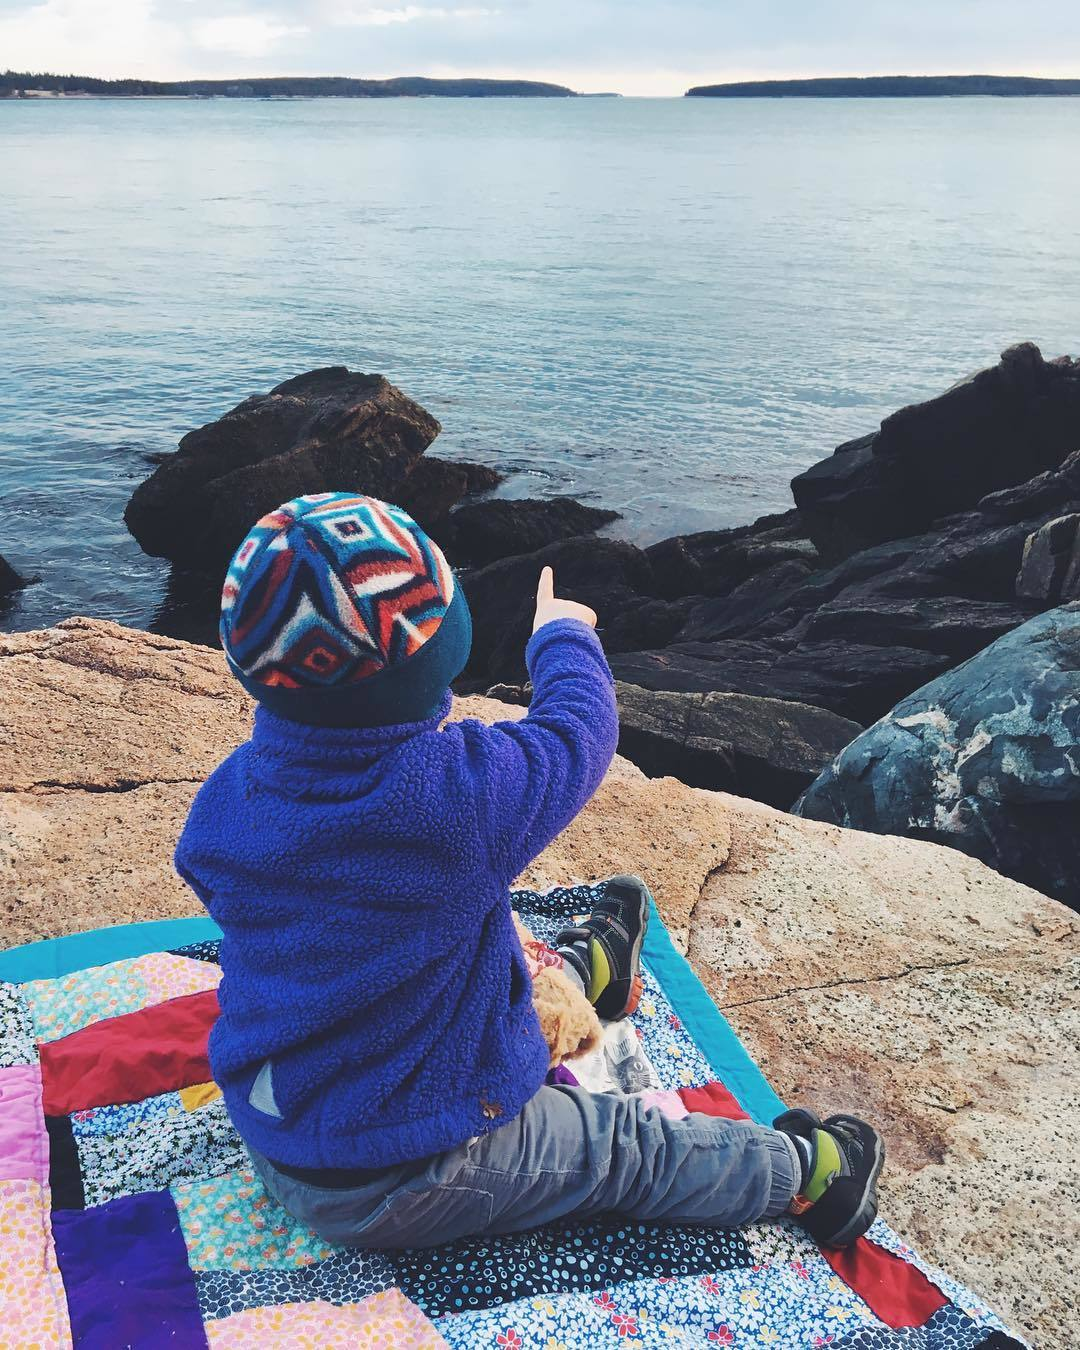 A young child in warm clothes sits on a rock, while pointing at the ocean.